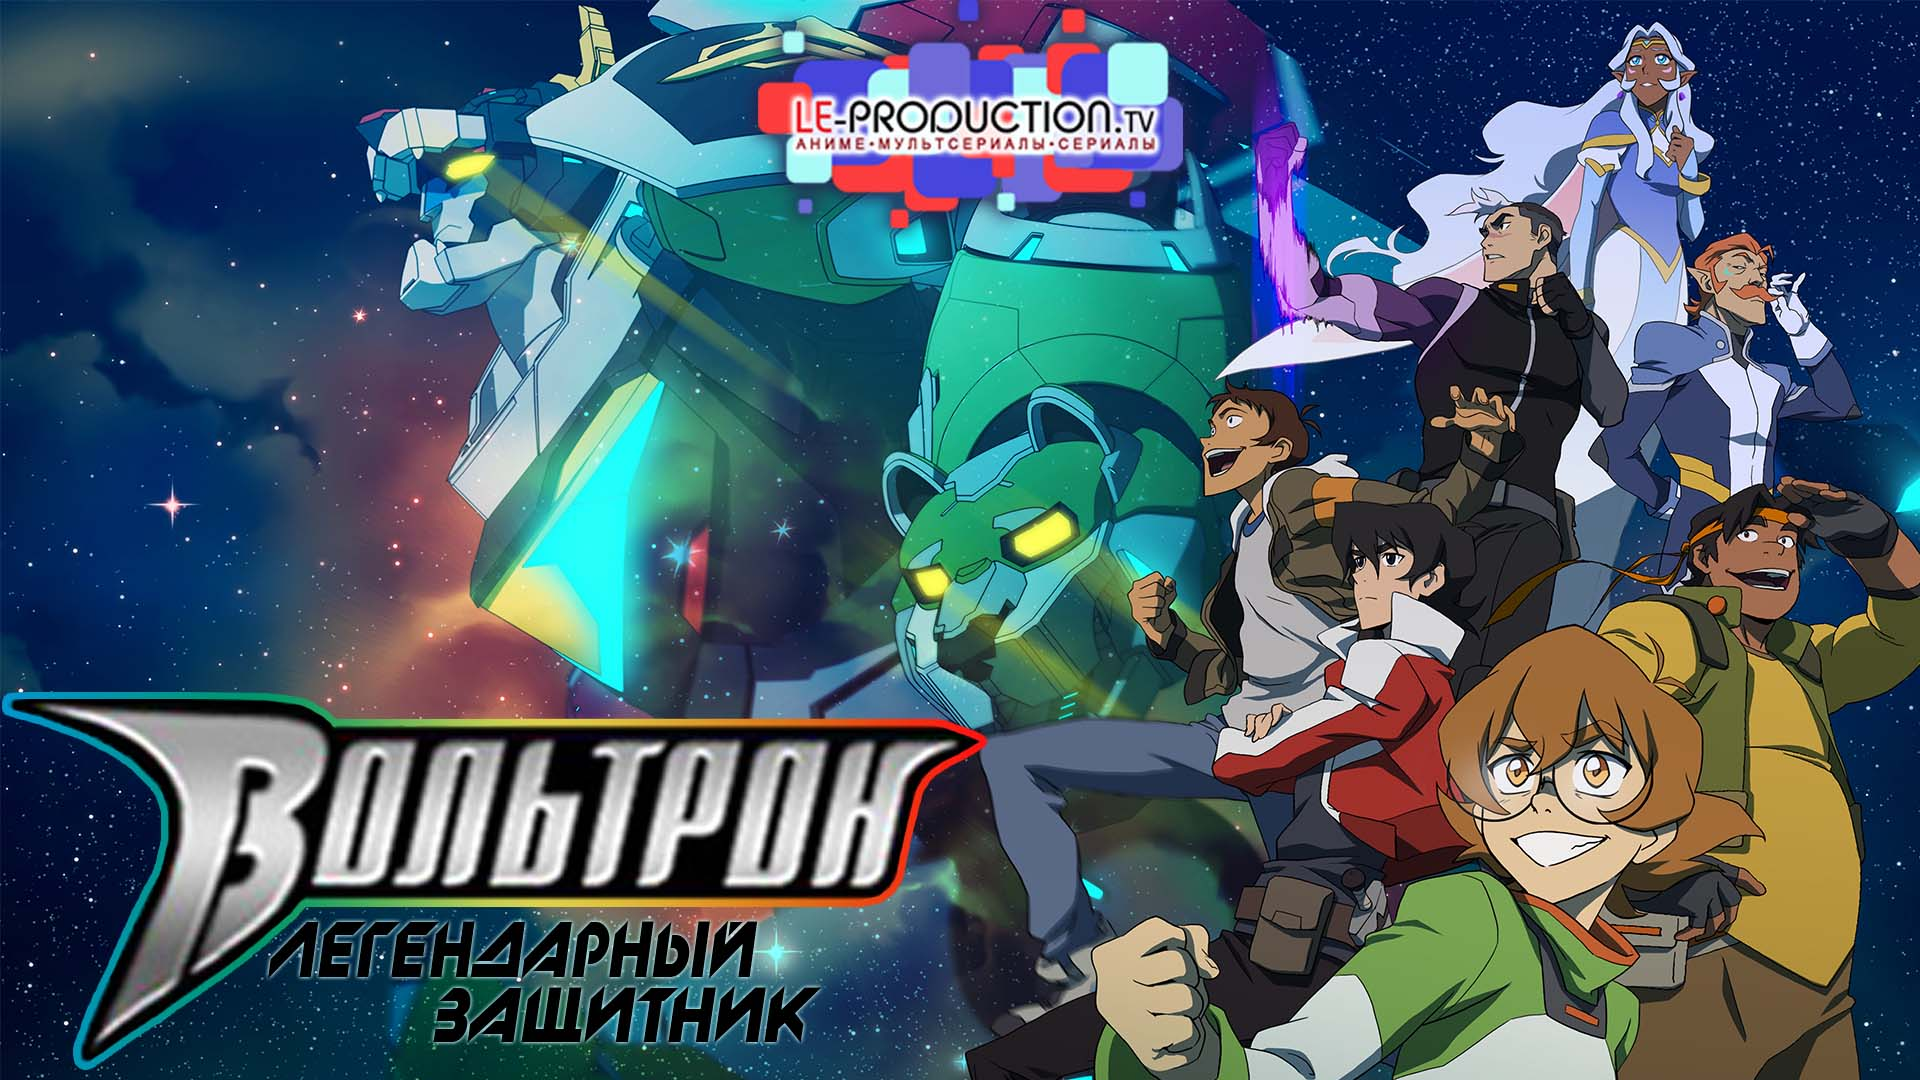 Вольтрон: Легендарный… / Voltron: Legendary Defender 2 season /